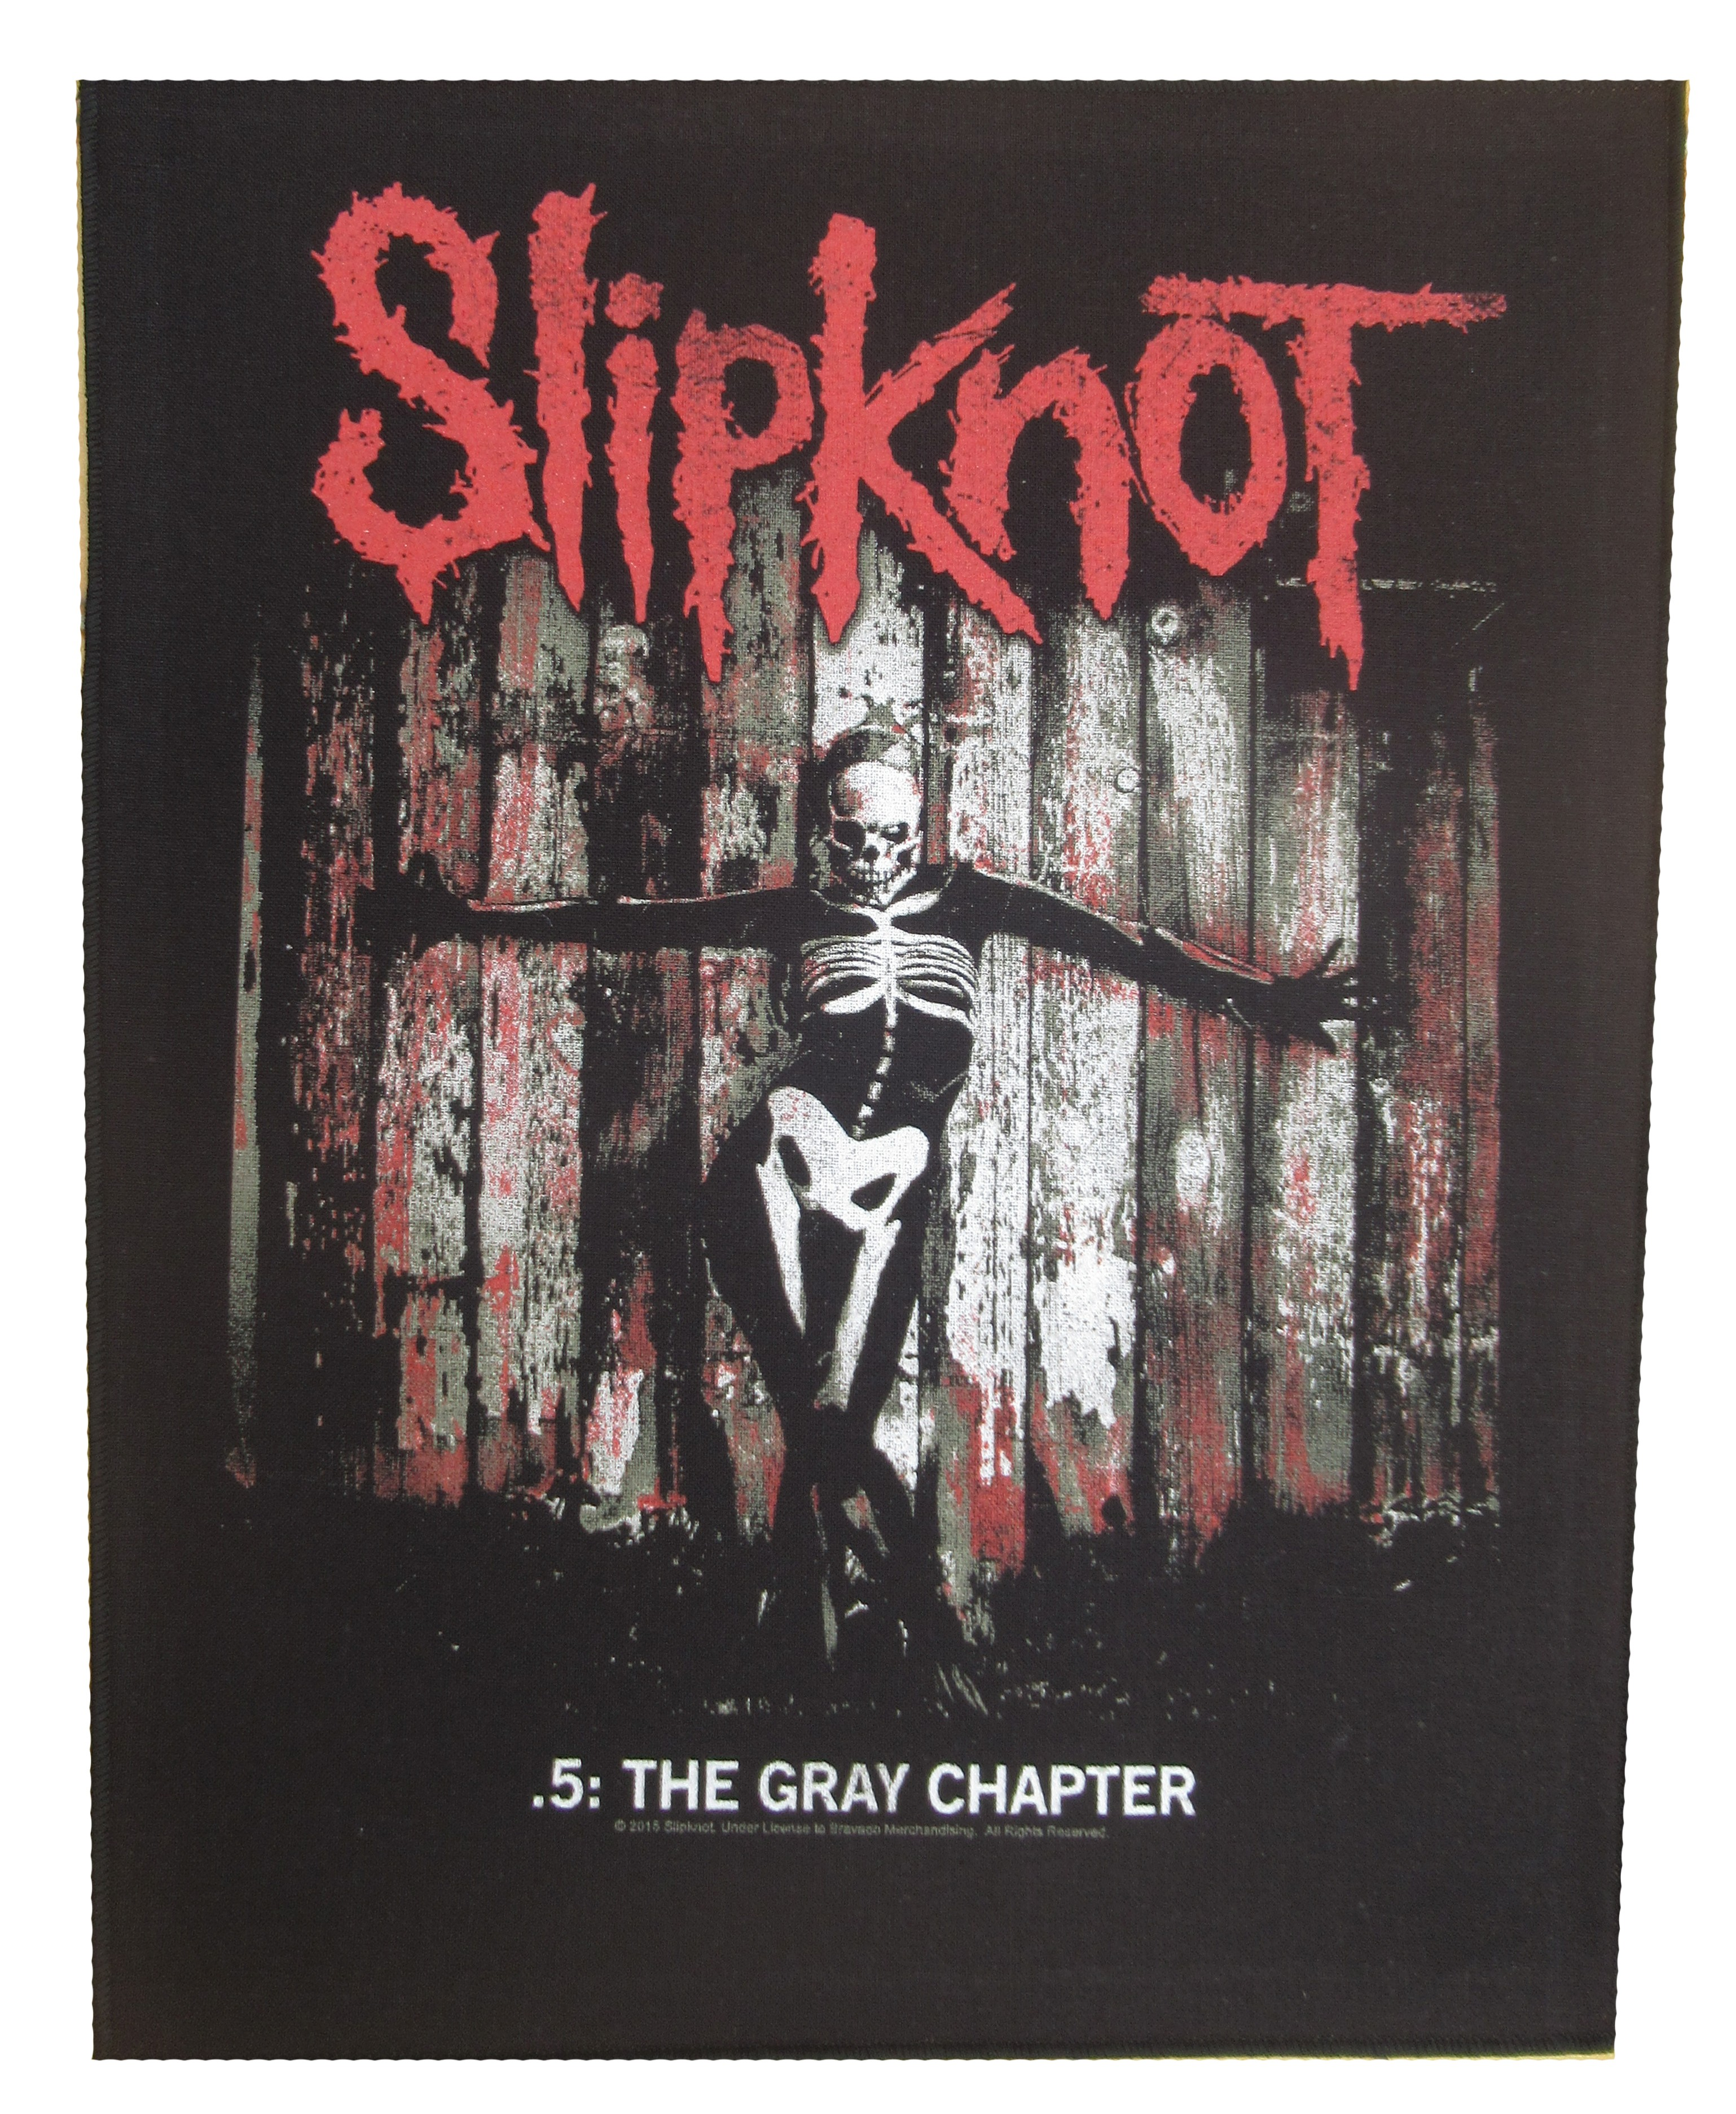 NagaPatches Slipknot patche dorsal dossard grande taille